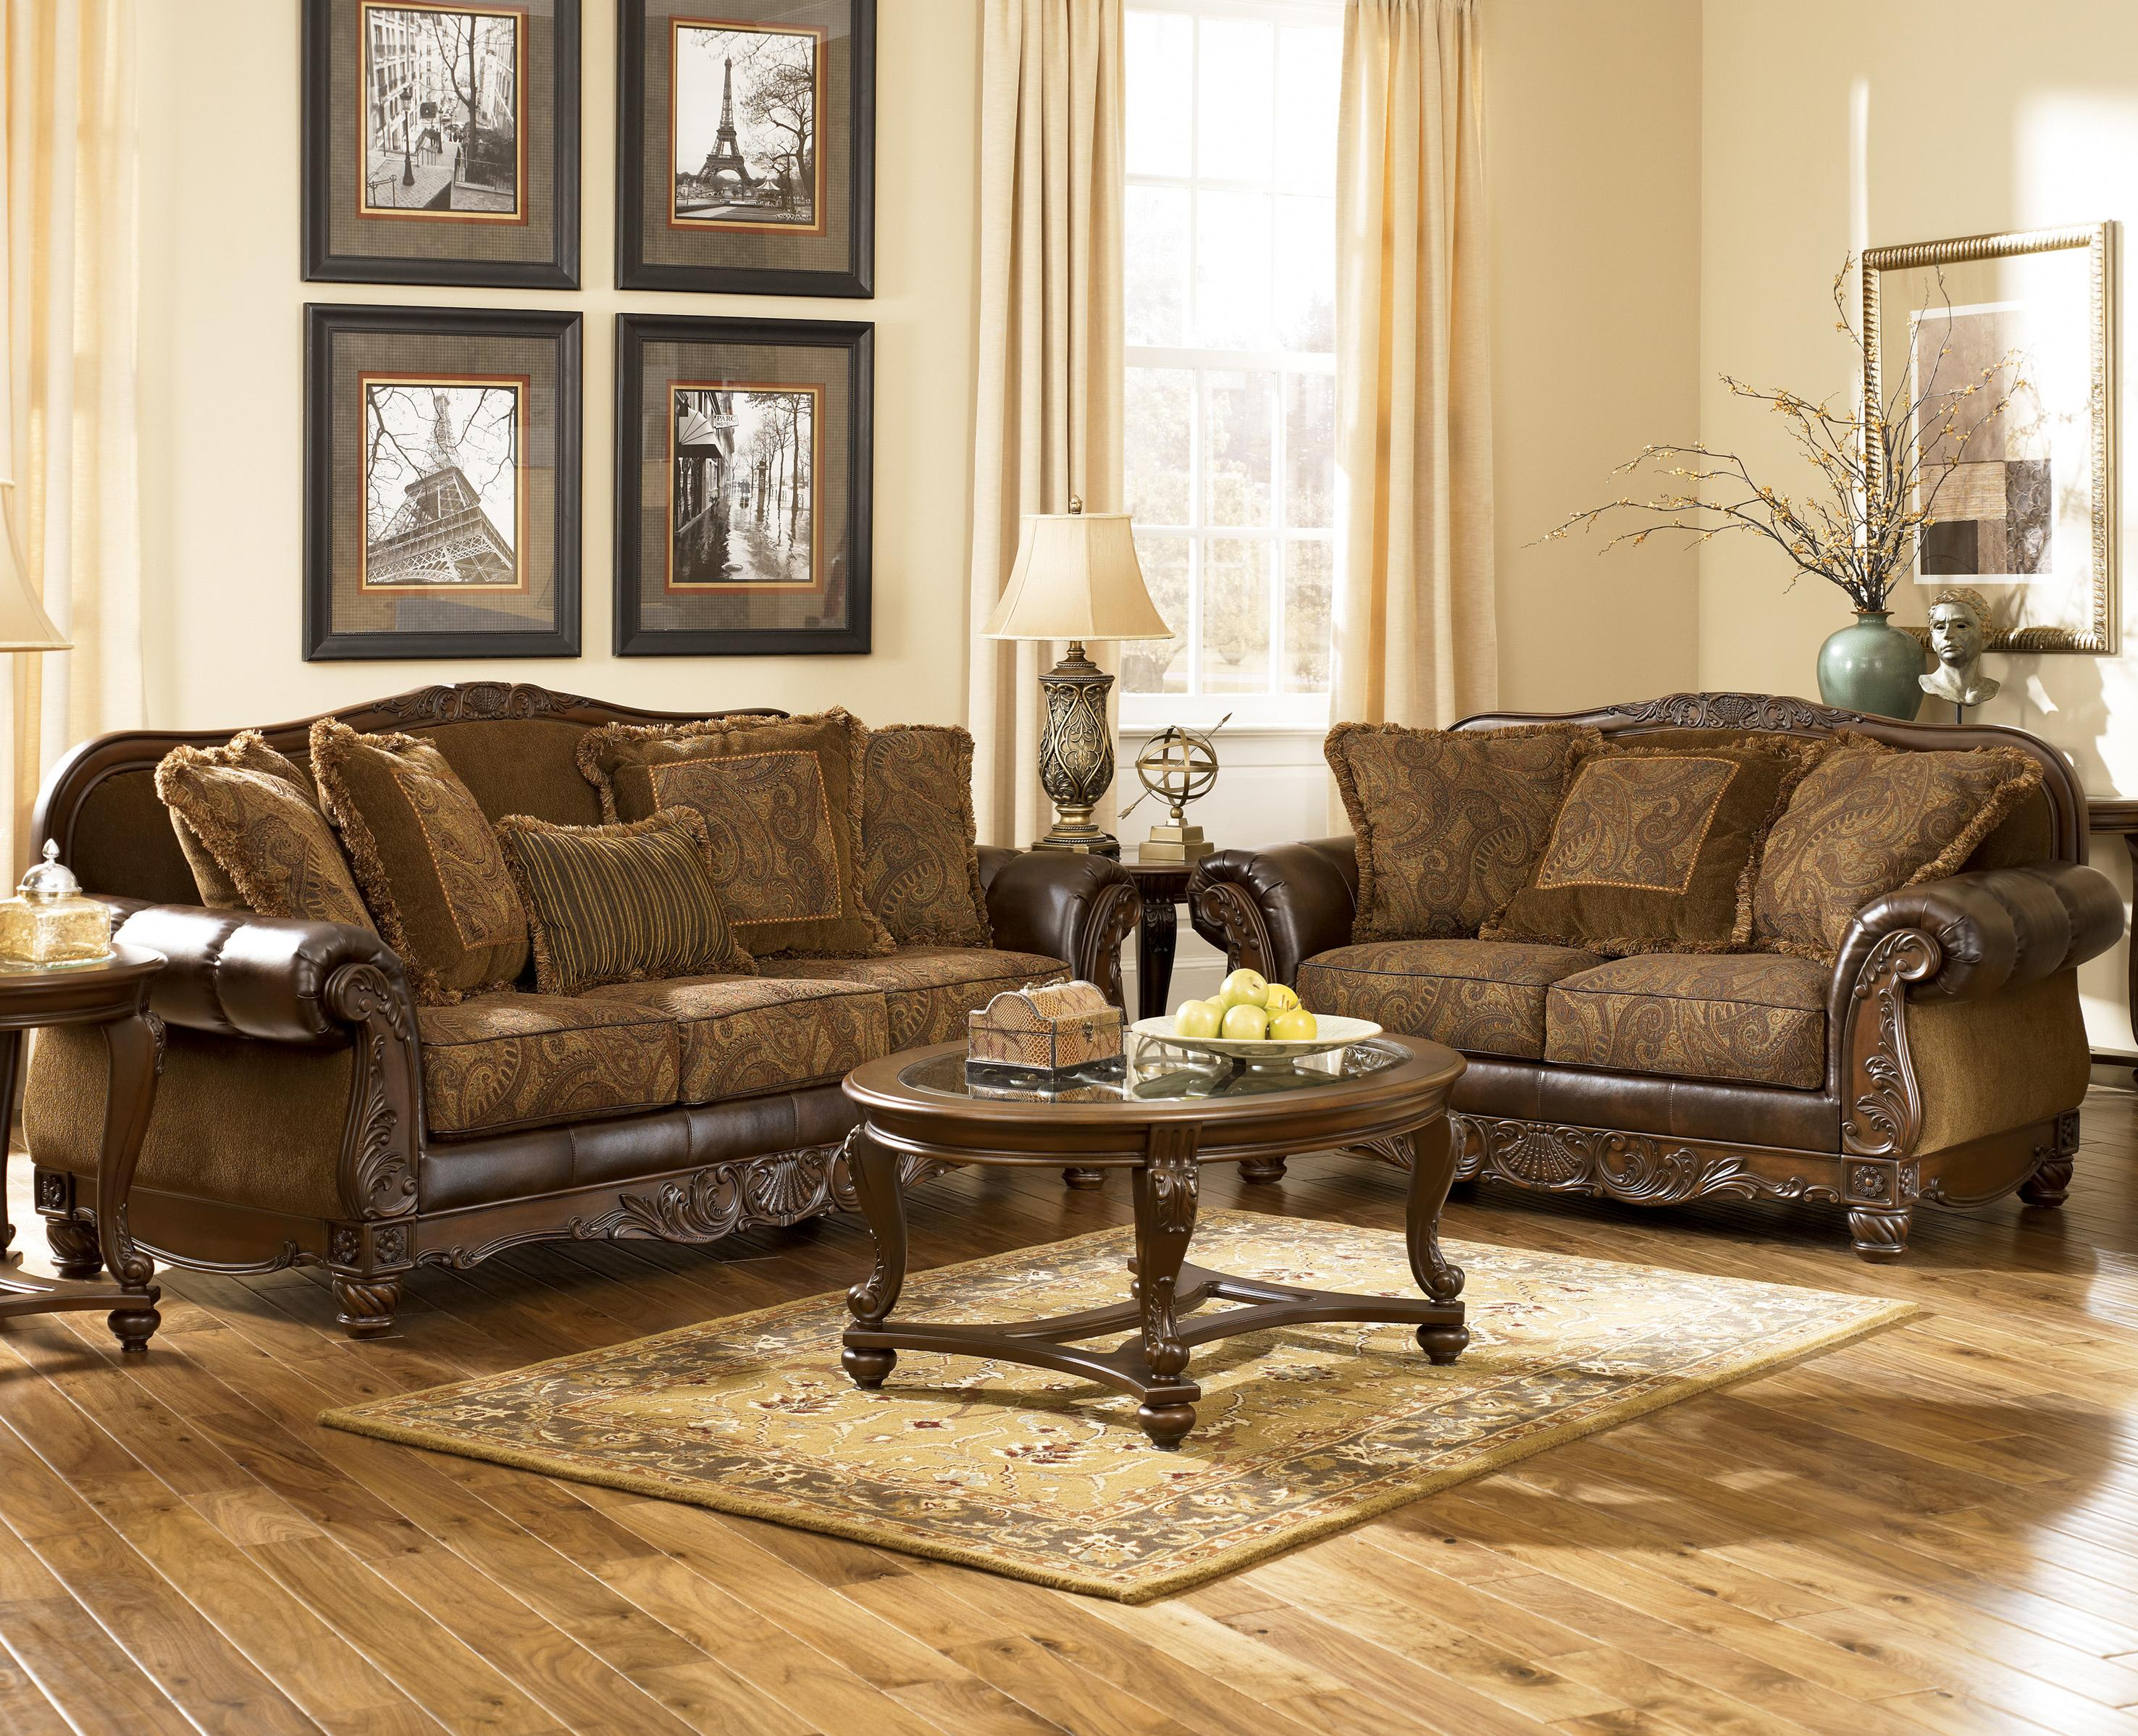 Ashley Furniture HomeStore of Gonzales, Gonzales, LA. K likes. Amazing pricing on stylish and durable home furniture. Get more without paying more and /5(78).